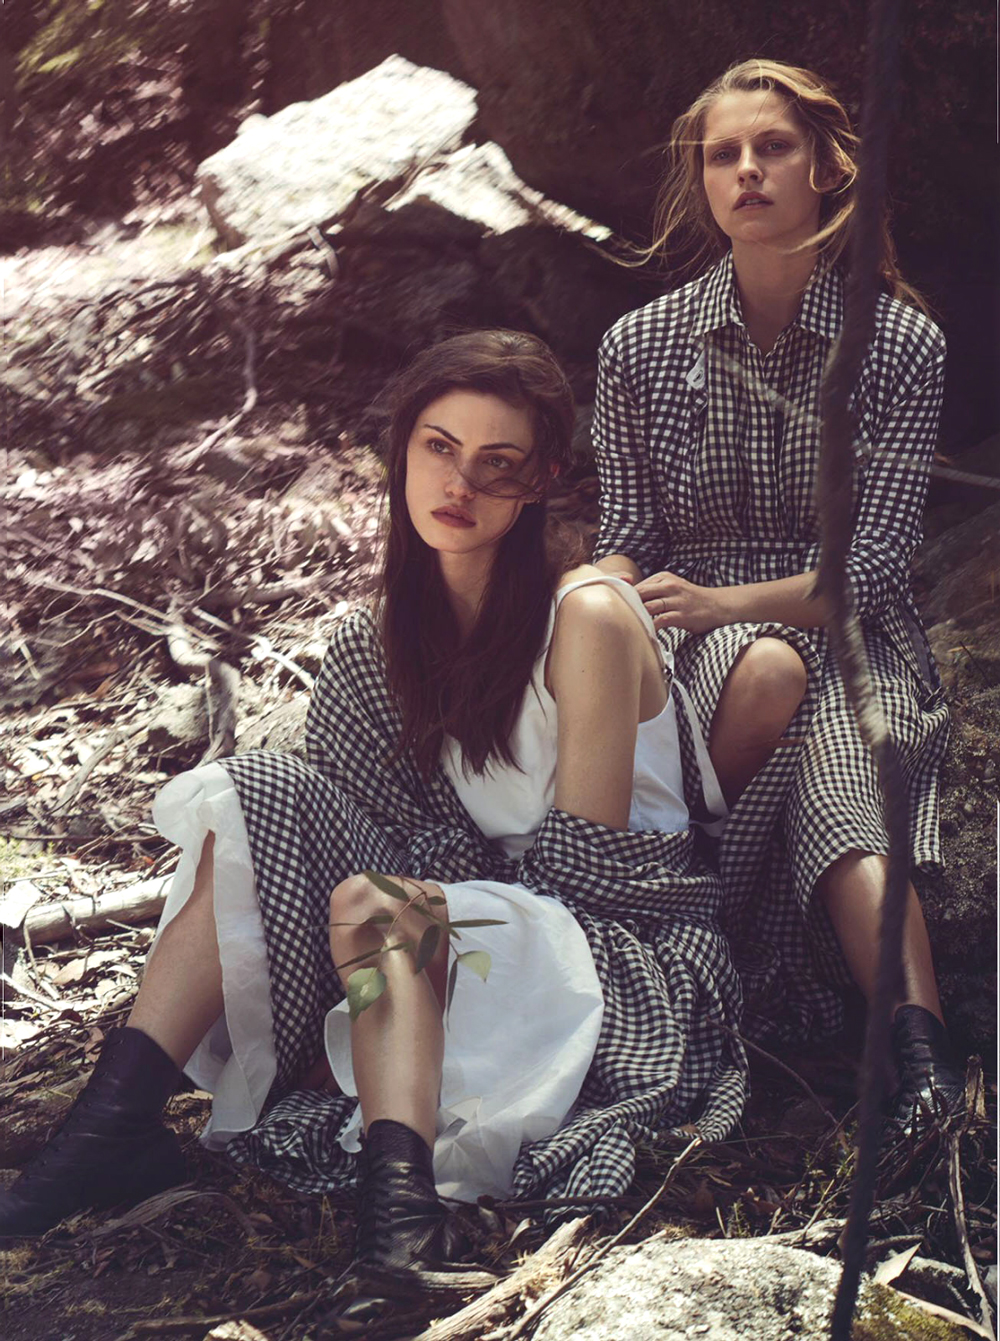 Teresa Palmer & Phoebe Tonkin in Lost in time / Vogue Australia March 2015 (photography: Will Davidson, styling: Christine Centenera) / fashioned by love british fashion blog / fashion editorials